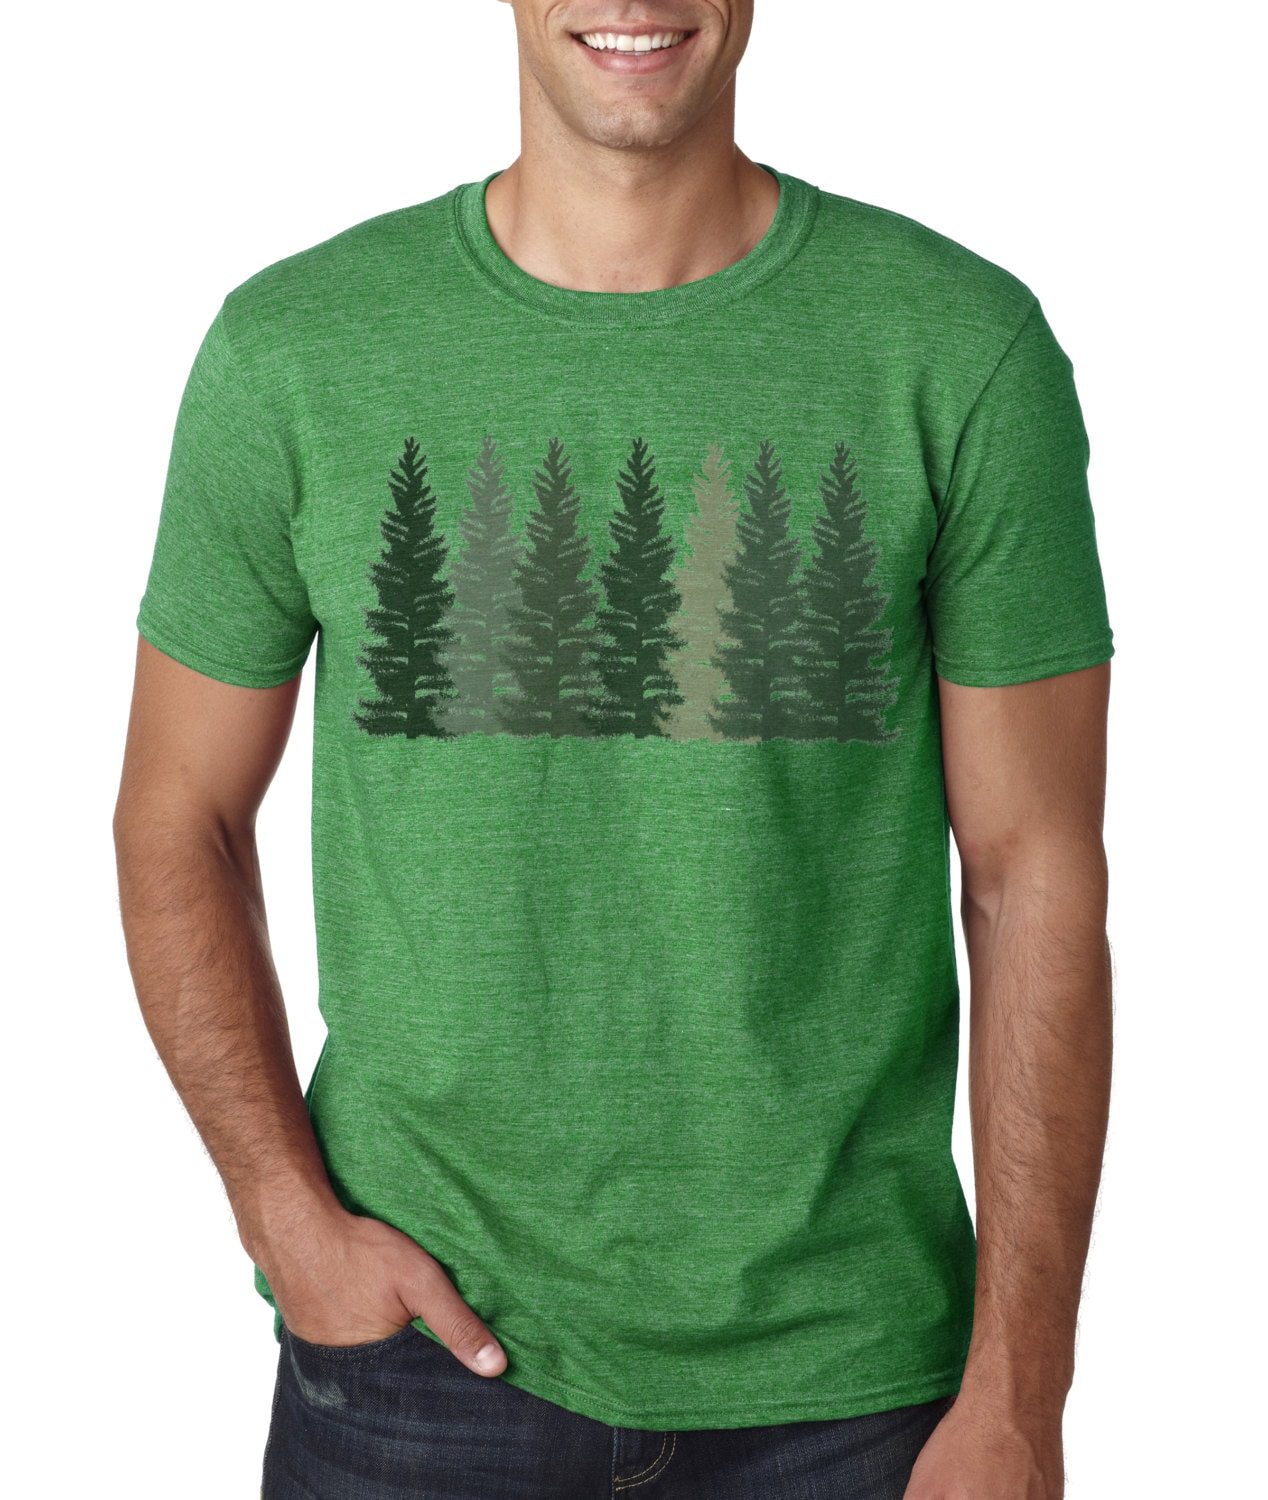 Trees T Shirt Mens T Shirt Nature Shirt Hiking Etsy